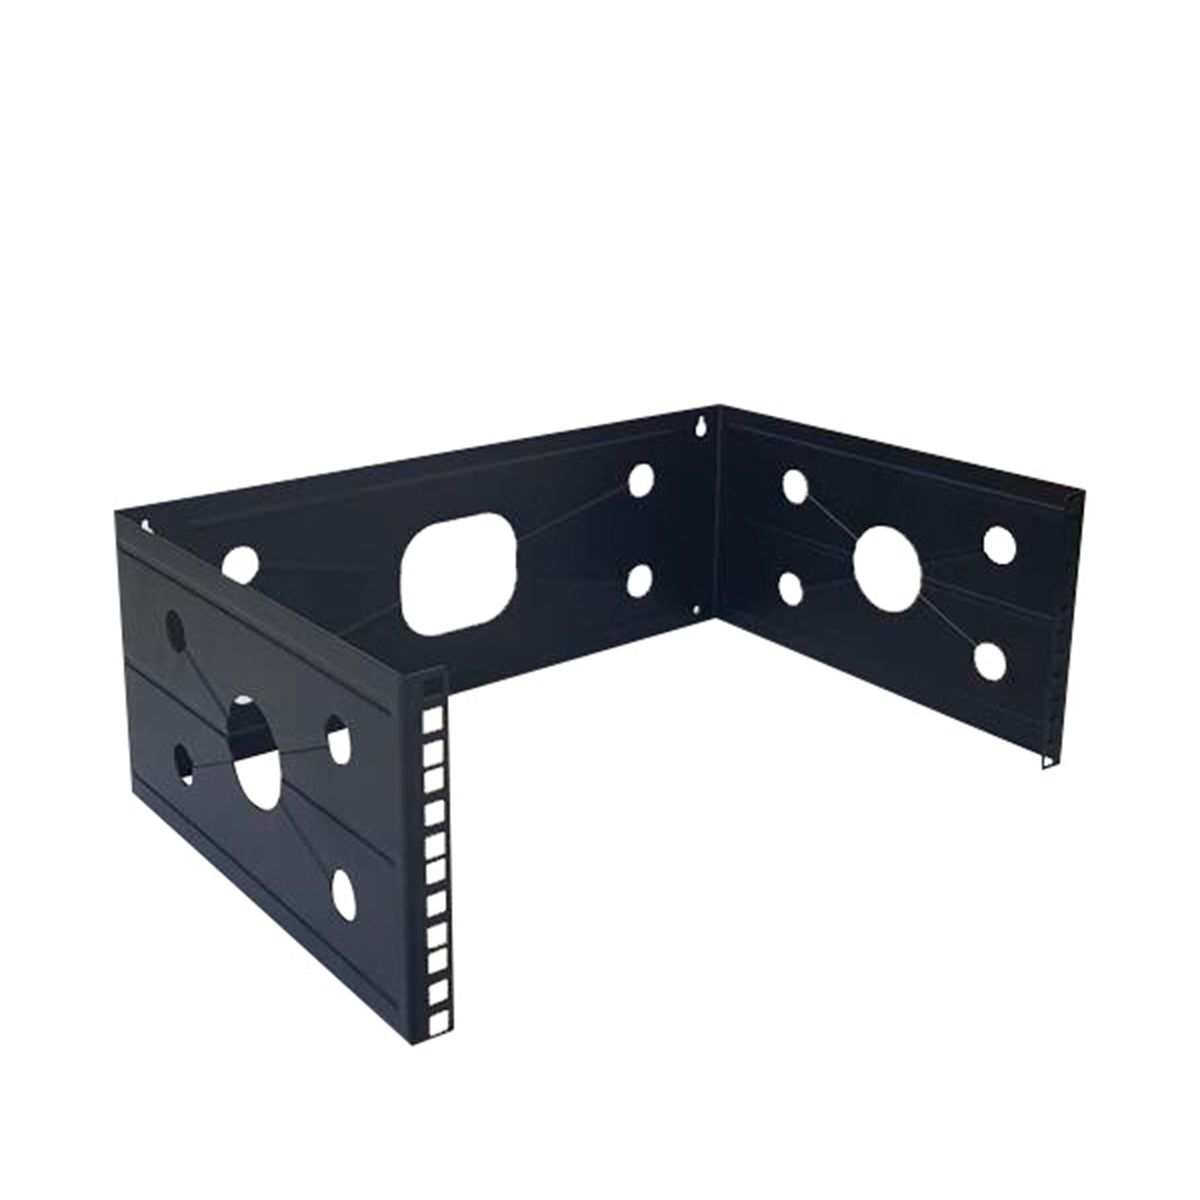 Rack de pared abierto Wireplus de 6 U